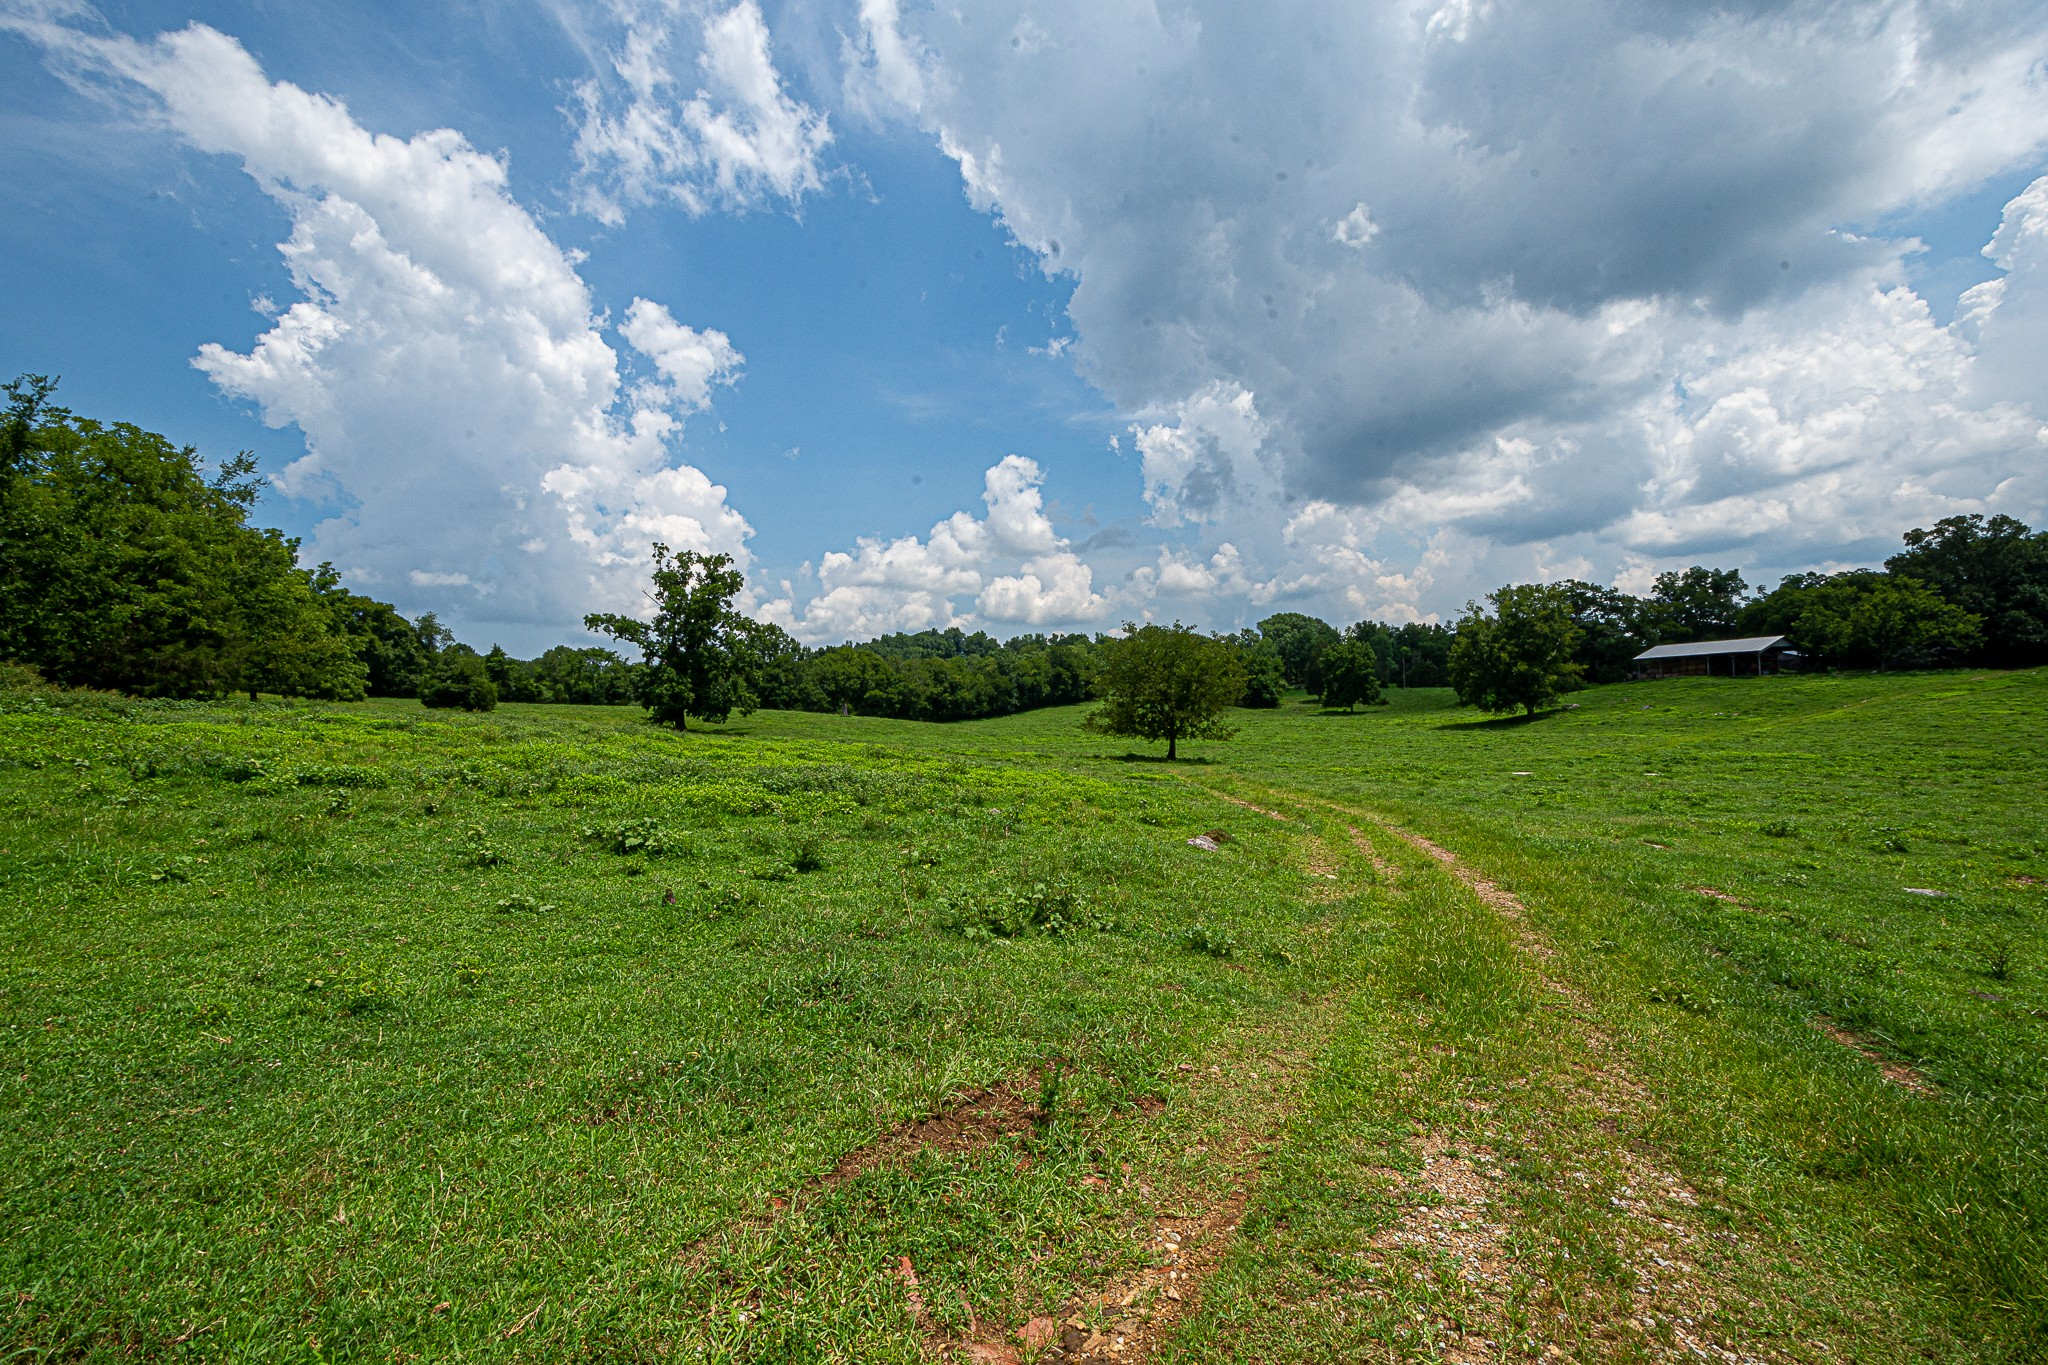 0 Short School Rd, Pulaski, TN 38478 - Pulaski, TN real estate listing